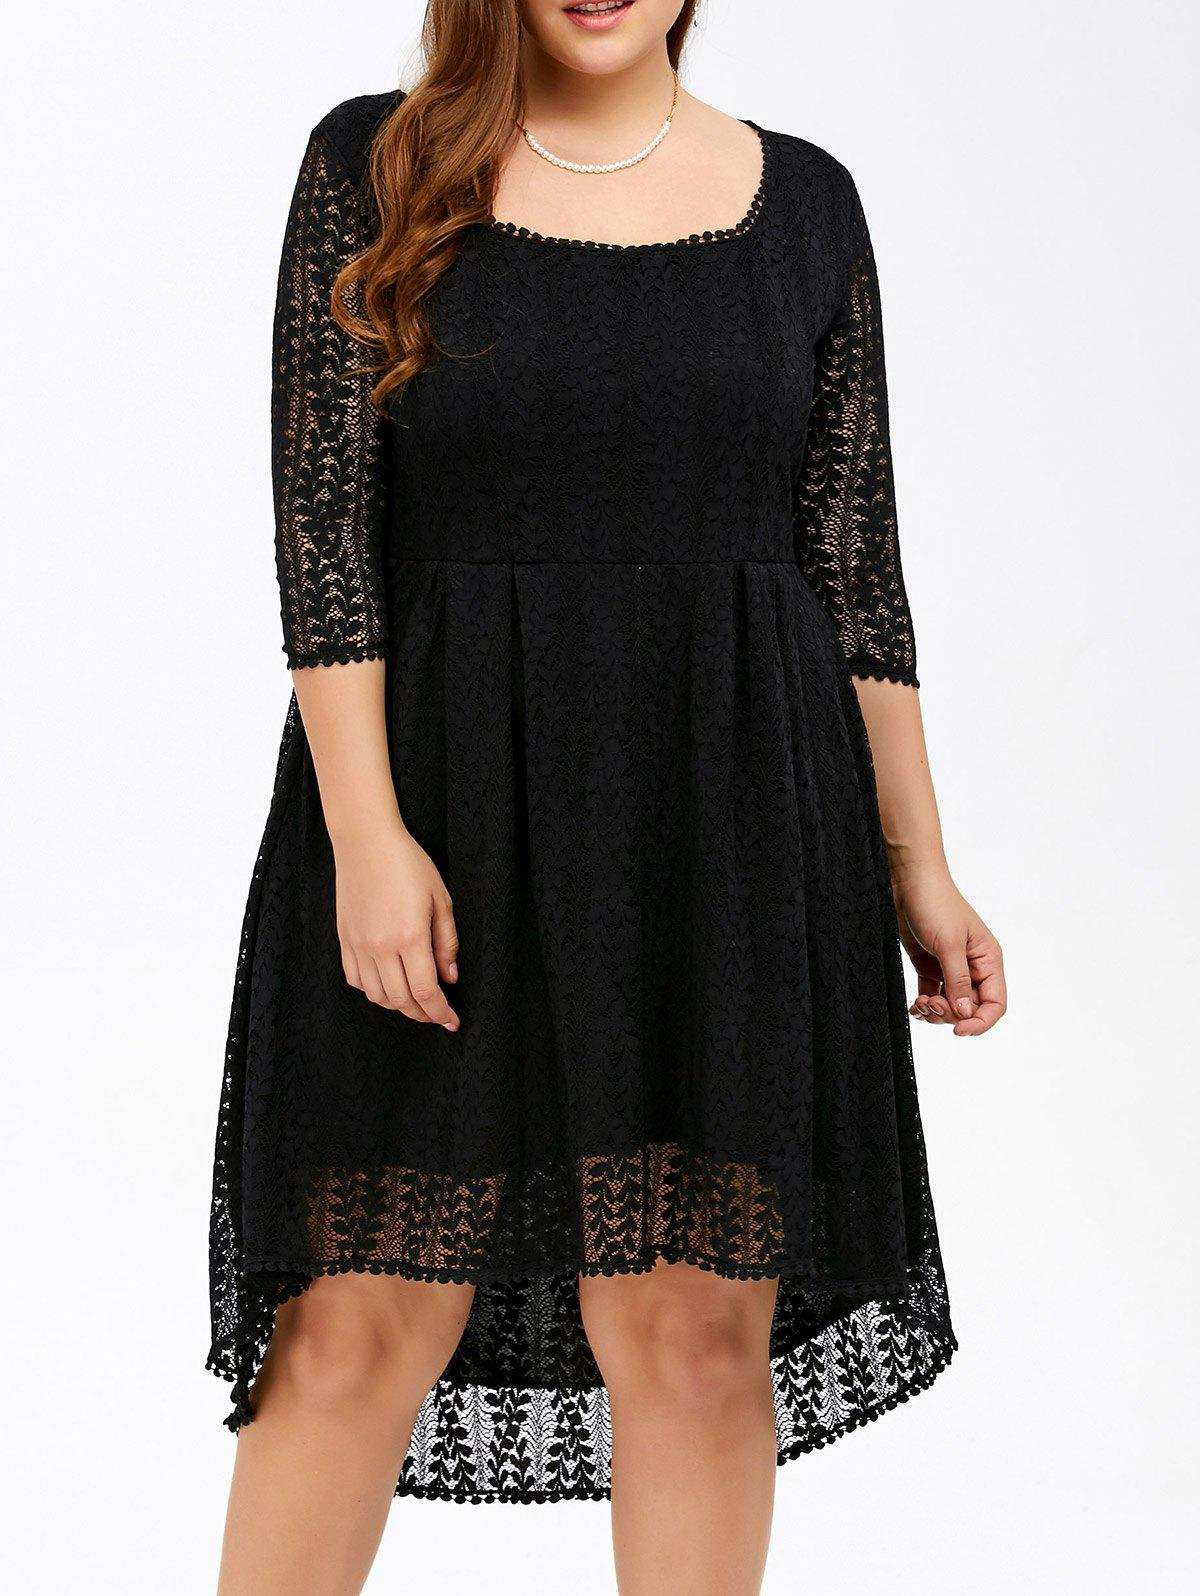 Plus Size Midi High Low A Line Lace Dress With SleevesWOMEN<br><br>Size: 7XL; Color: BLACK; Style: Casual; Material: Polyester; Silhouette: A-Line; Dresses Length: Mid-Calf; Neckline: Square Collar; Sleeve Length: 3/4 Length Sleeves; Pattern Type: Solid; With Belt: No; Season: Fall,Spring; Weight: 0.400kg; Package Contents: 1 x Dress;